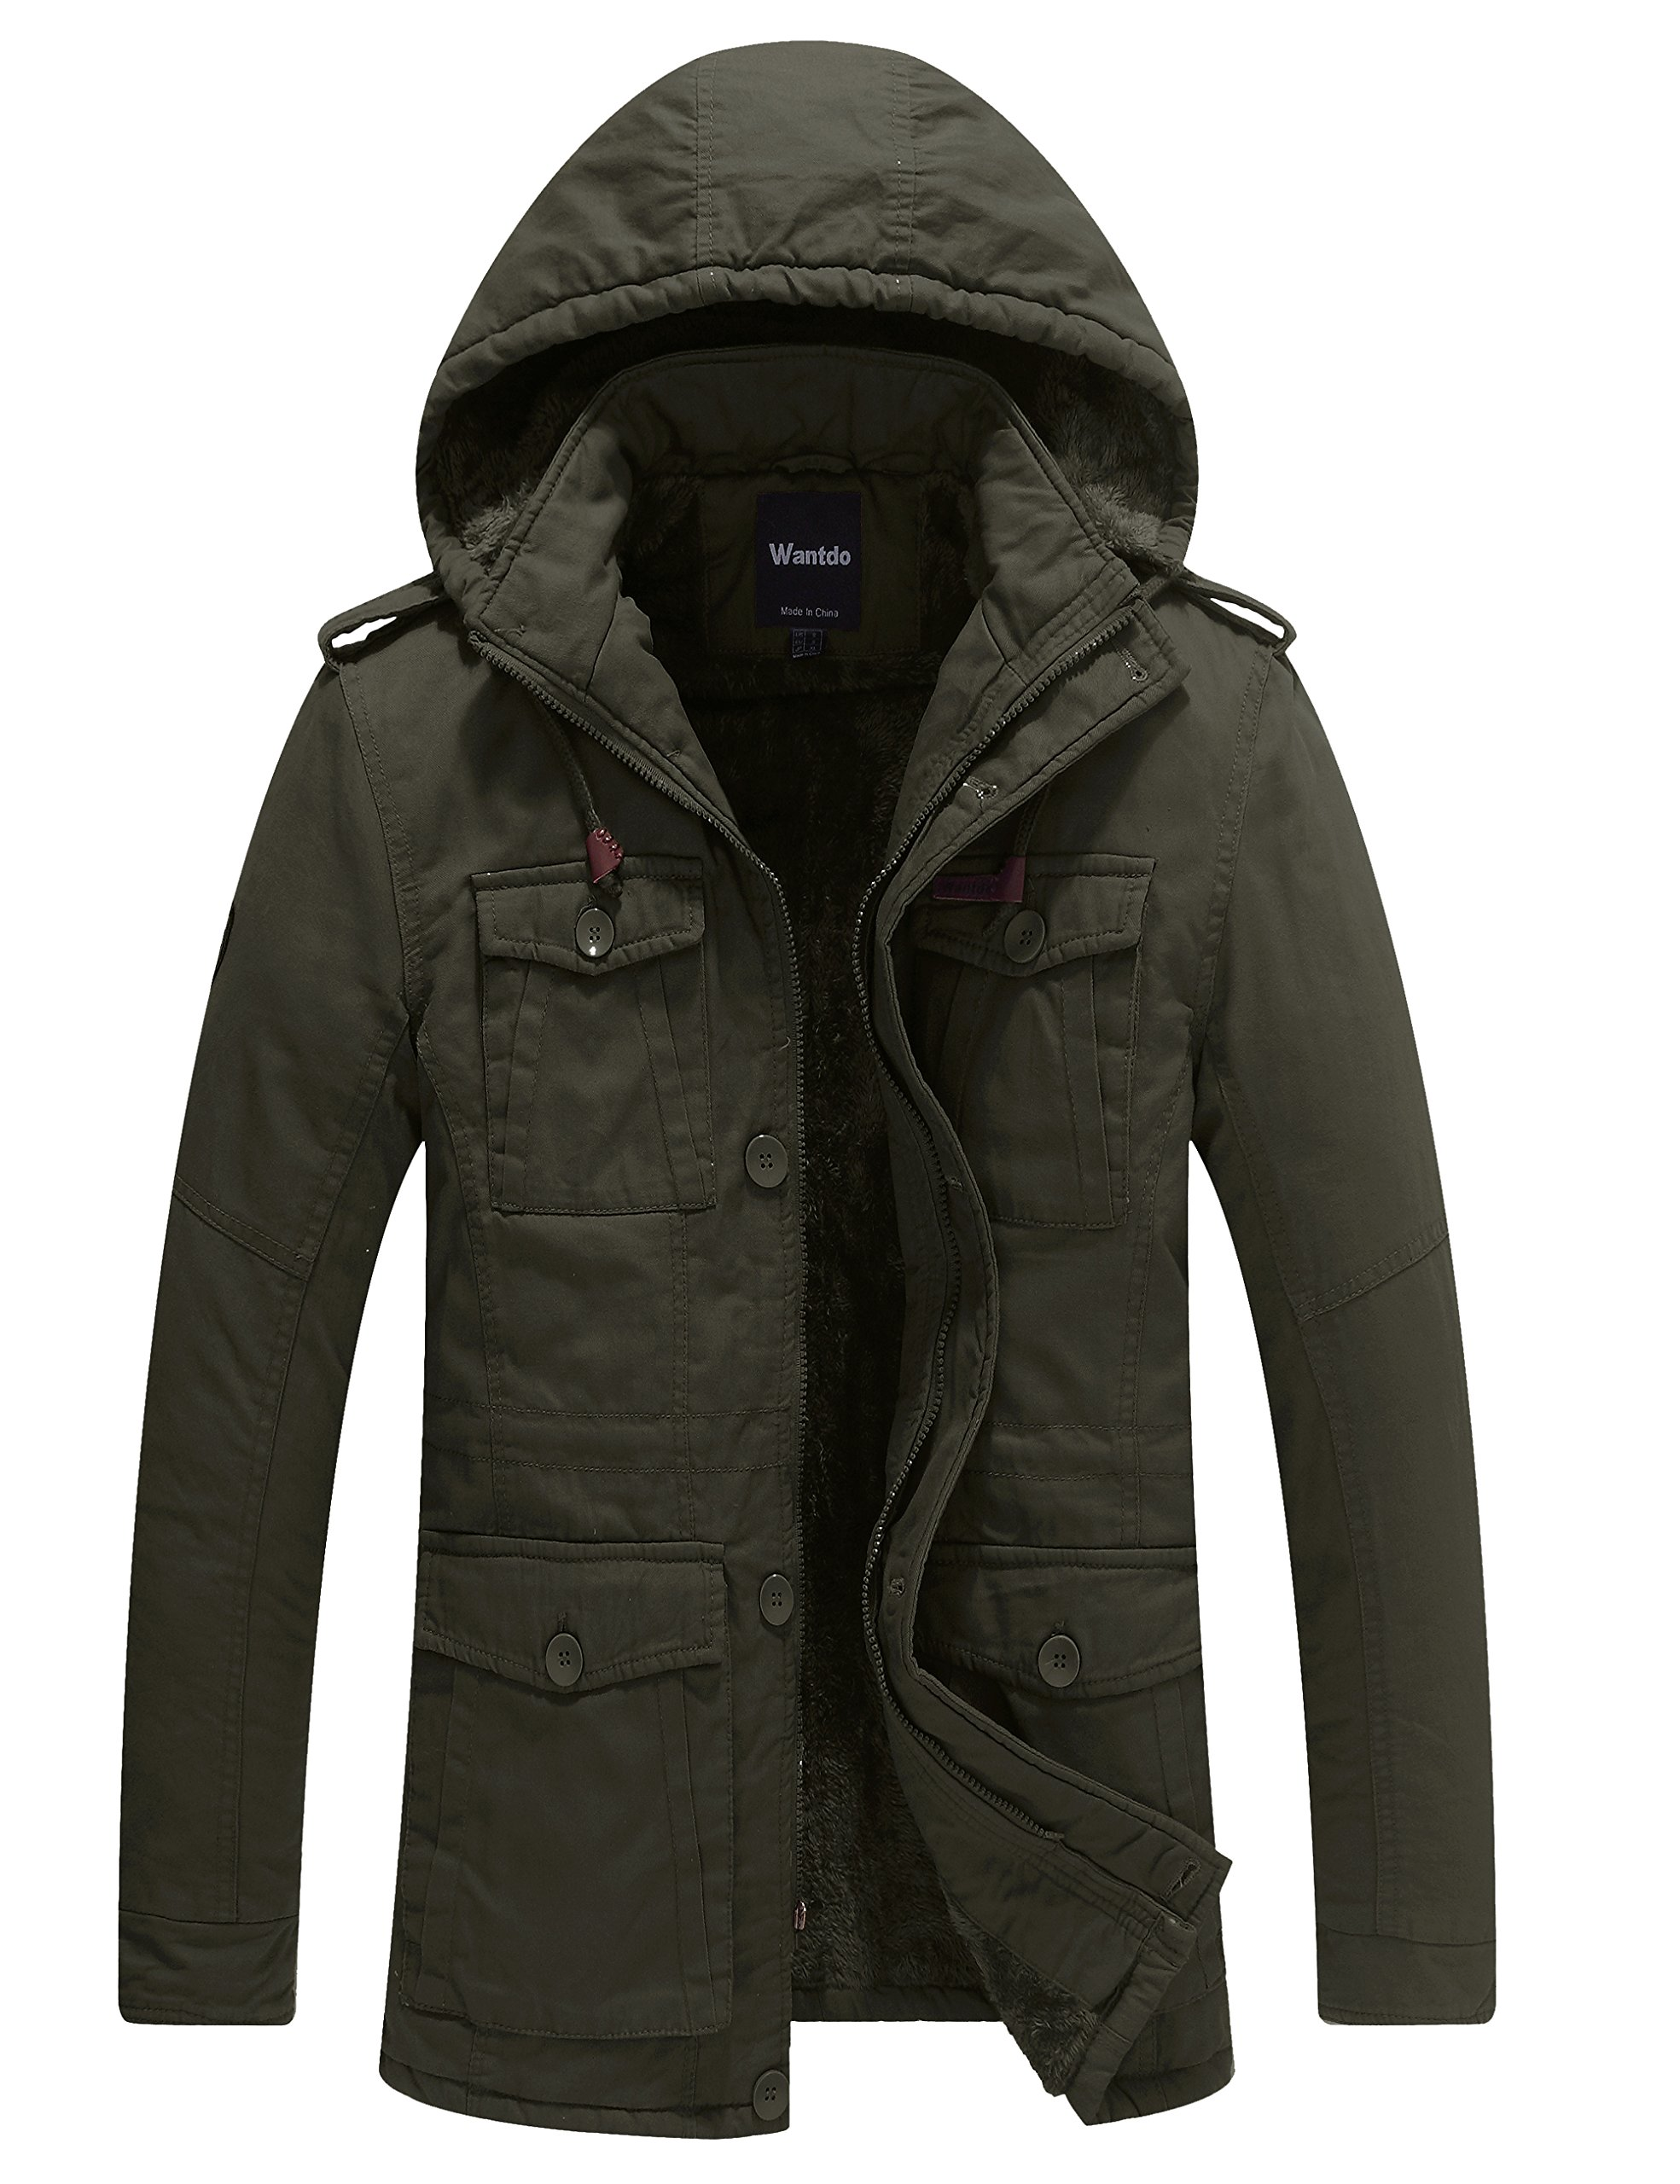 Wantdo Men's Winter Thicken Outwear Coat With Removable Hood (Army Green, Large)